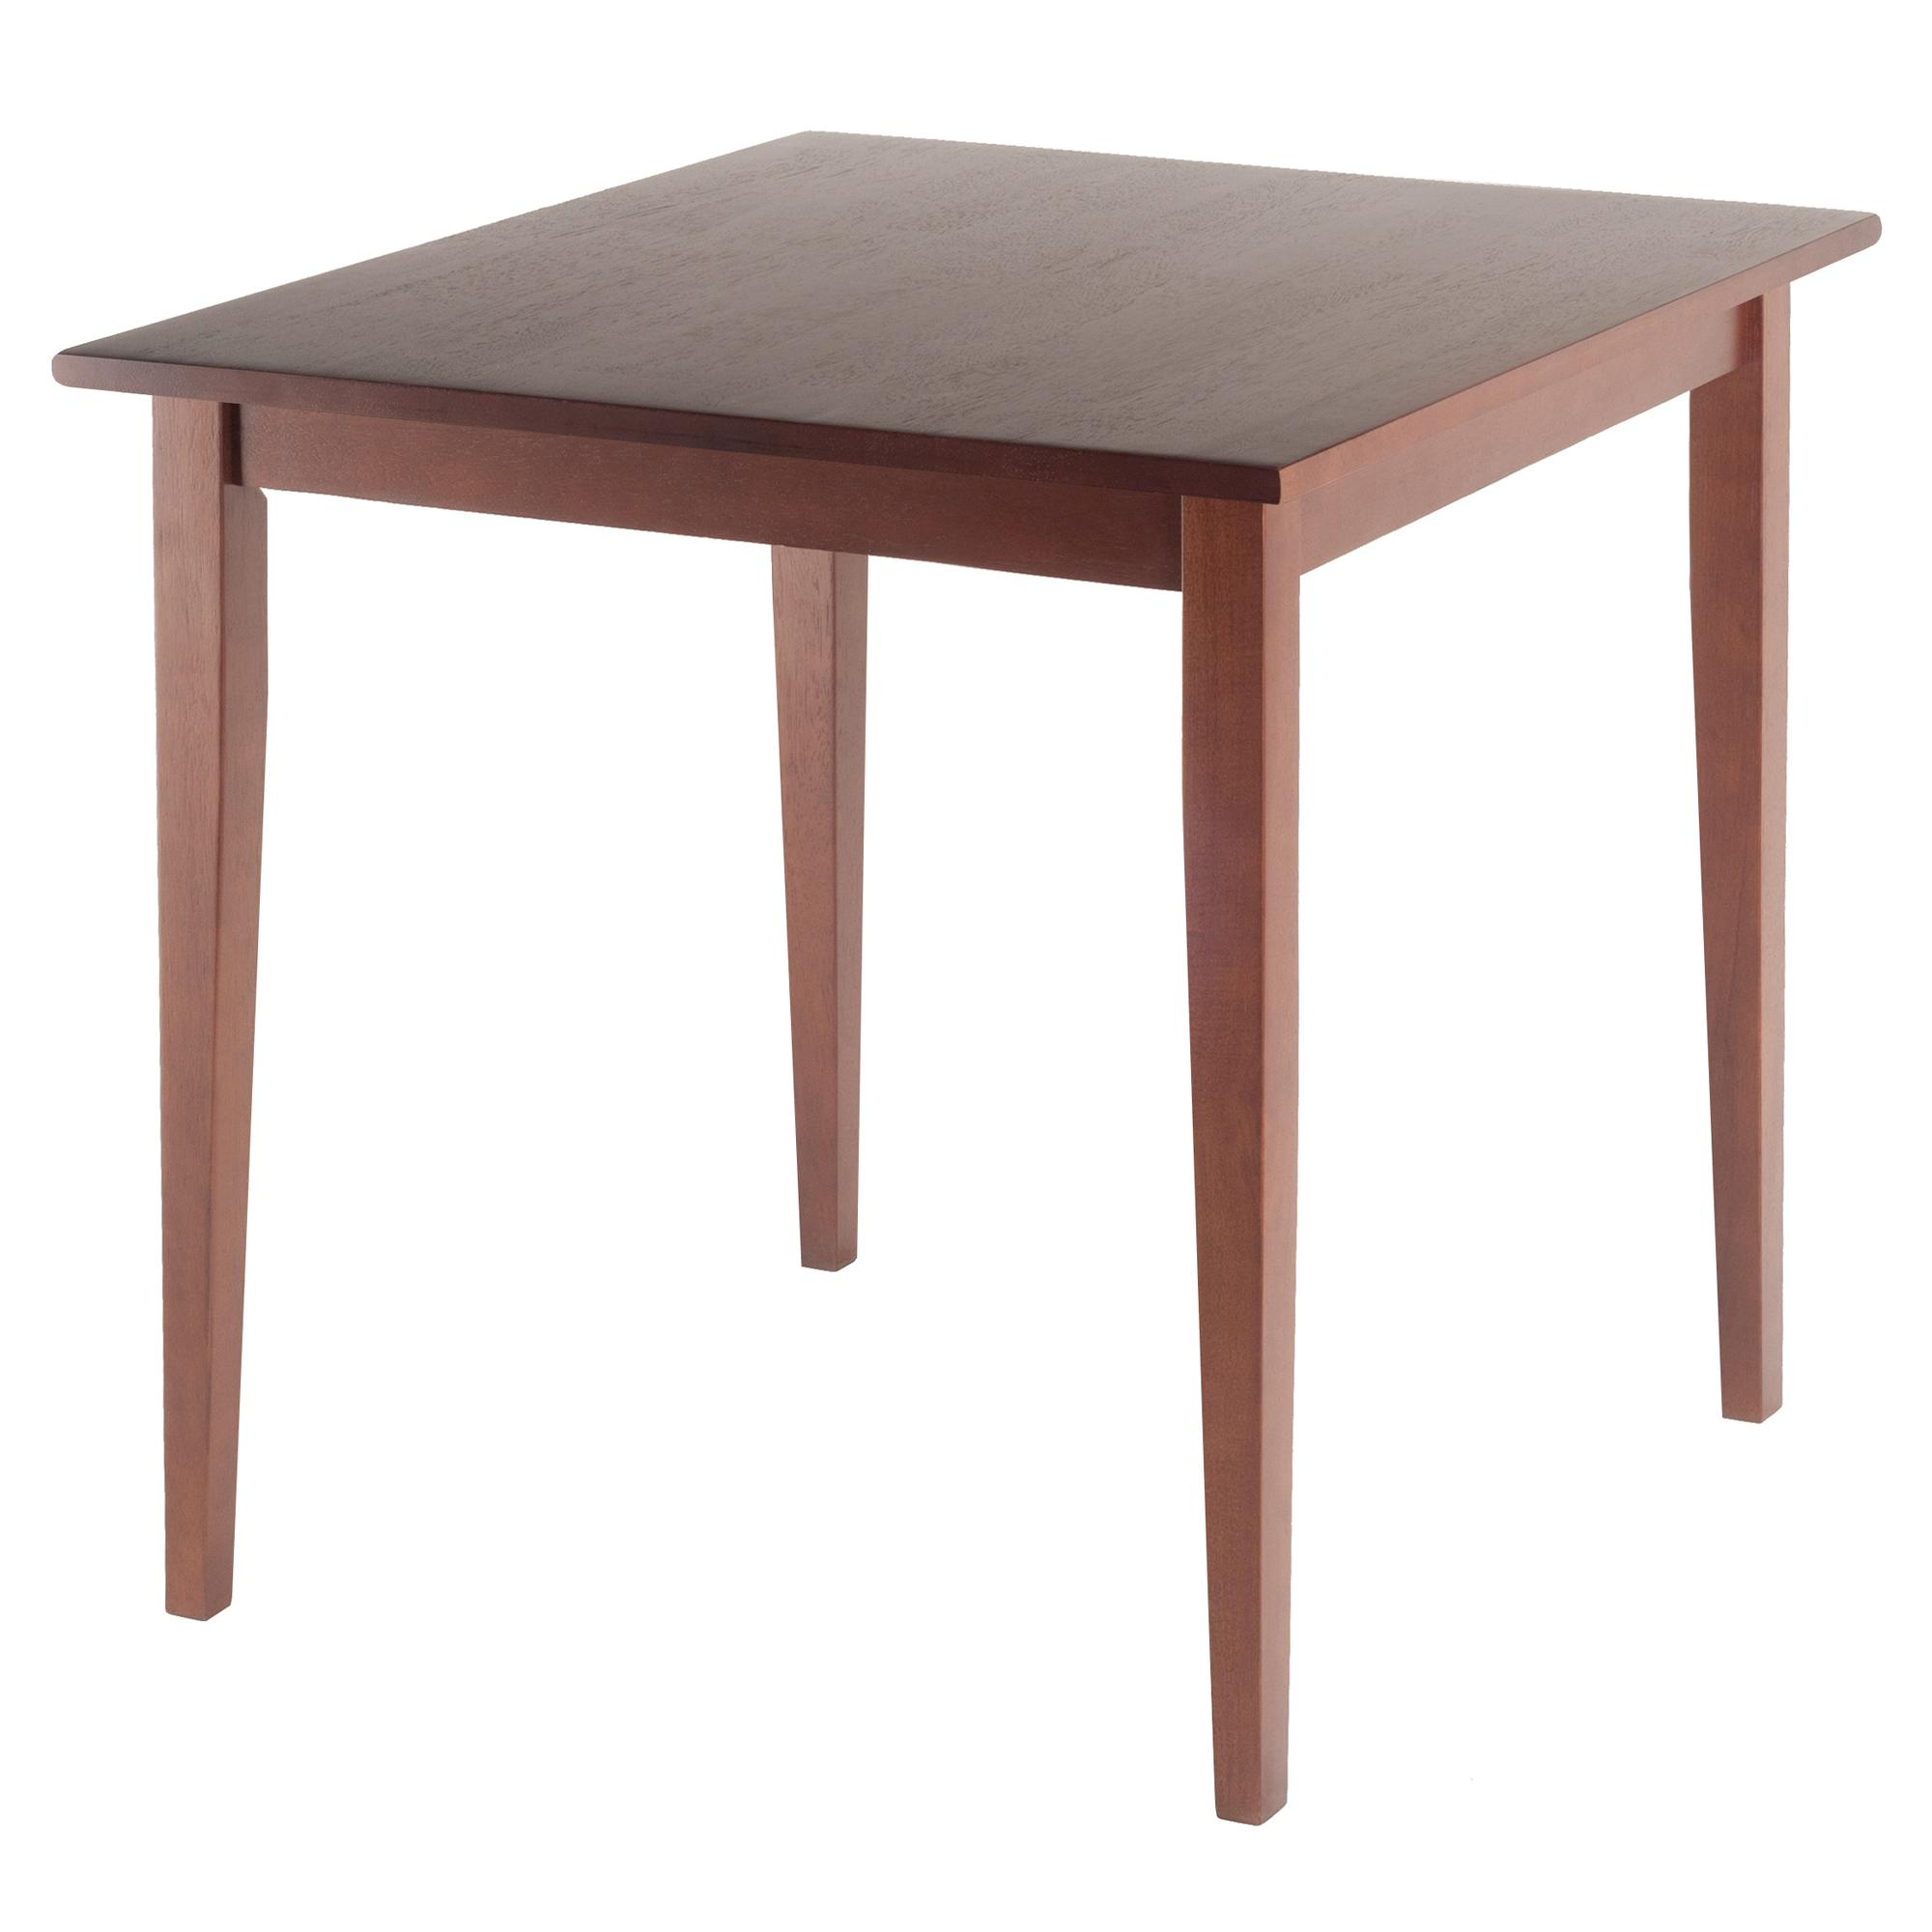 Winsome Wood Groveland Square Dining Table In Antique Walnut Finish Tables